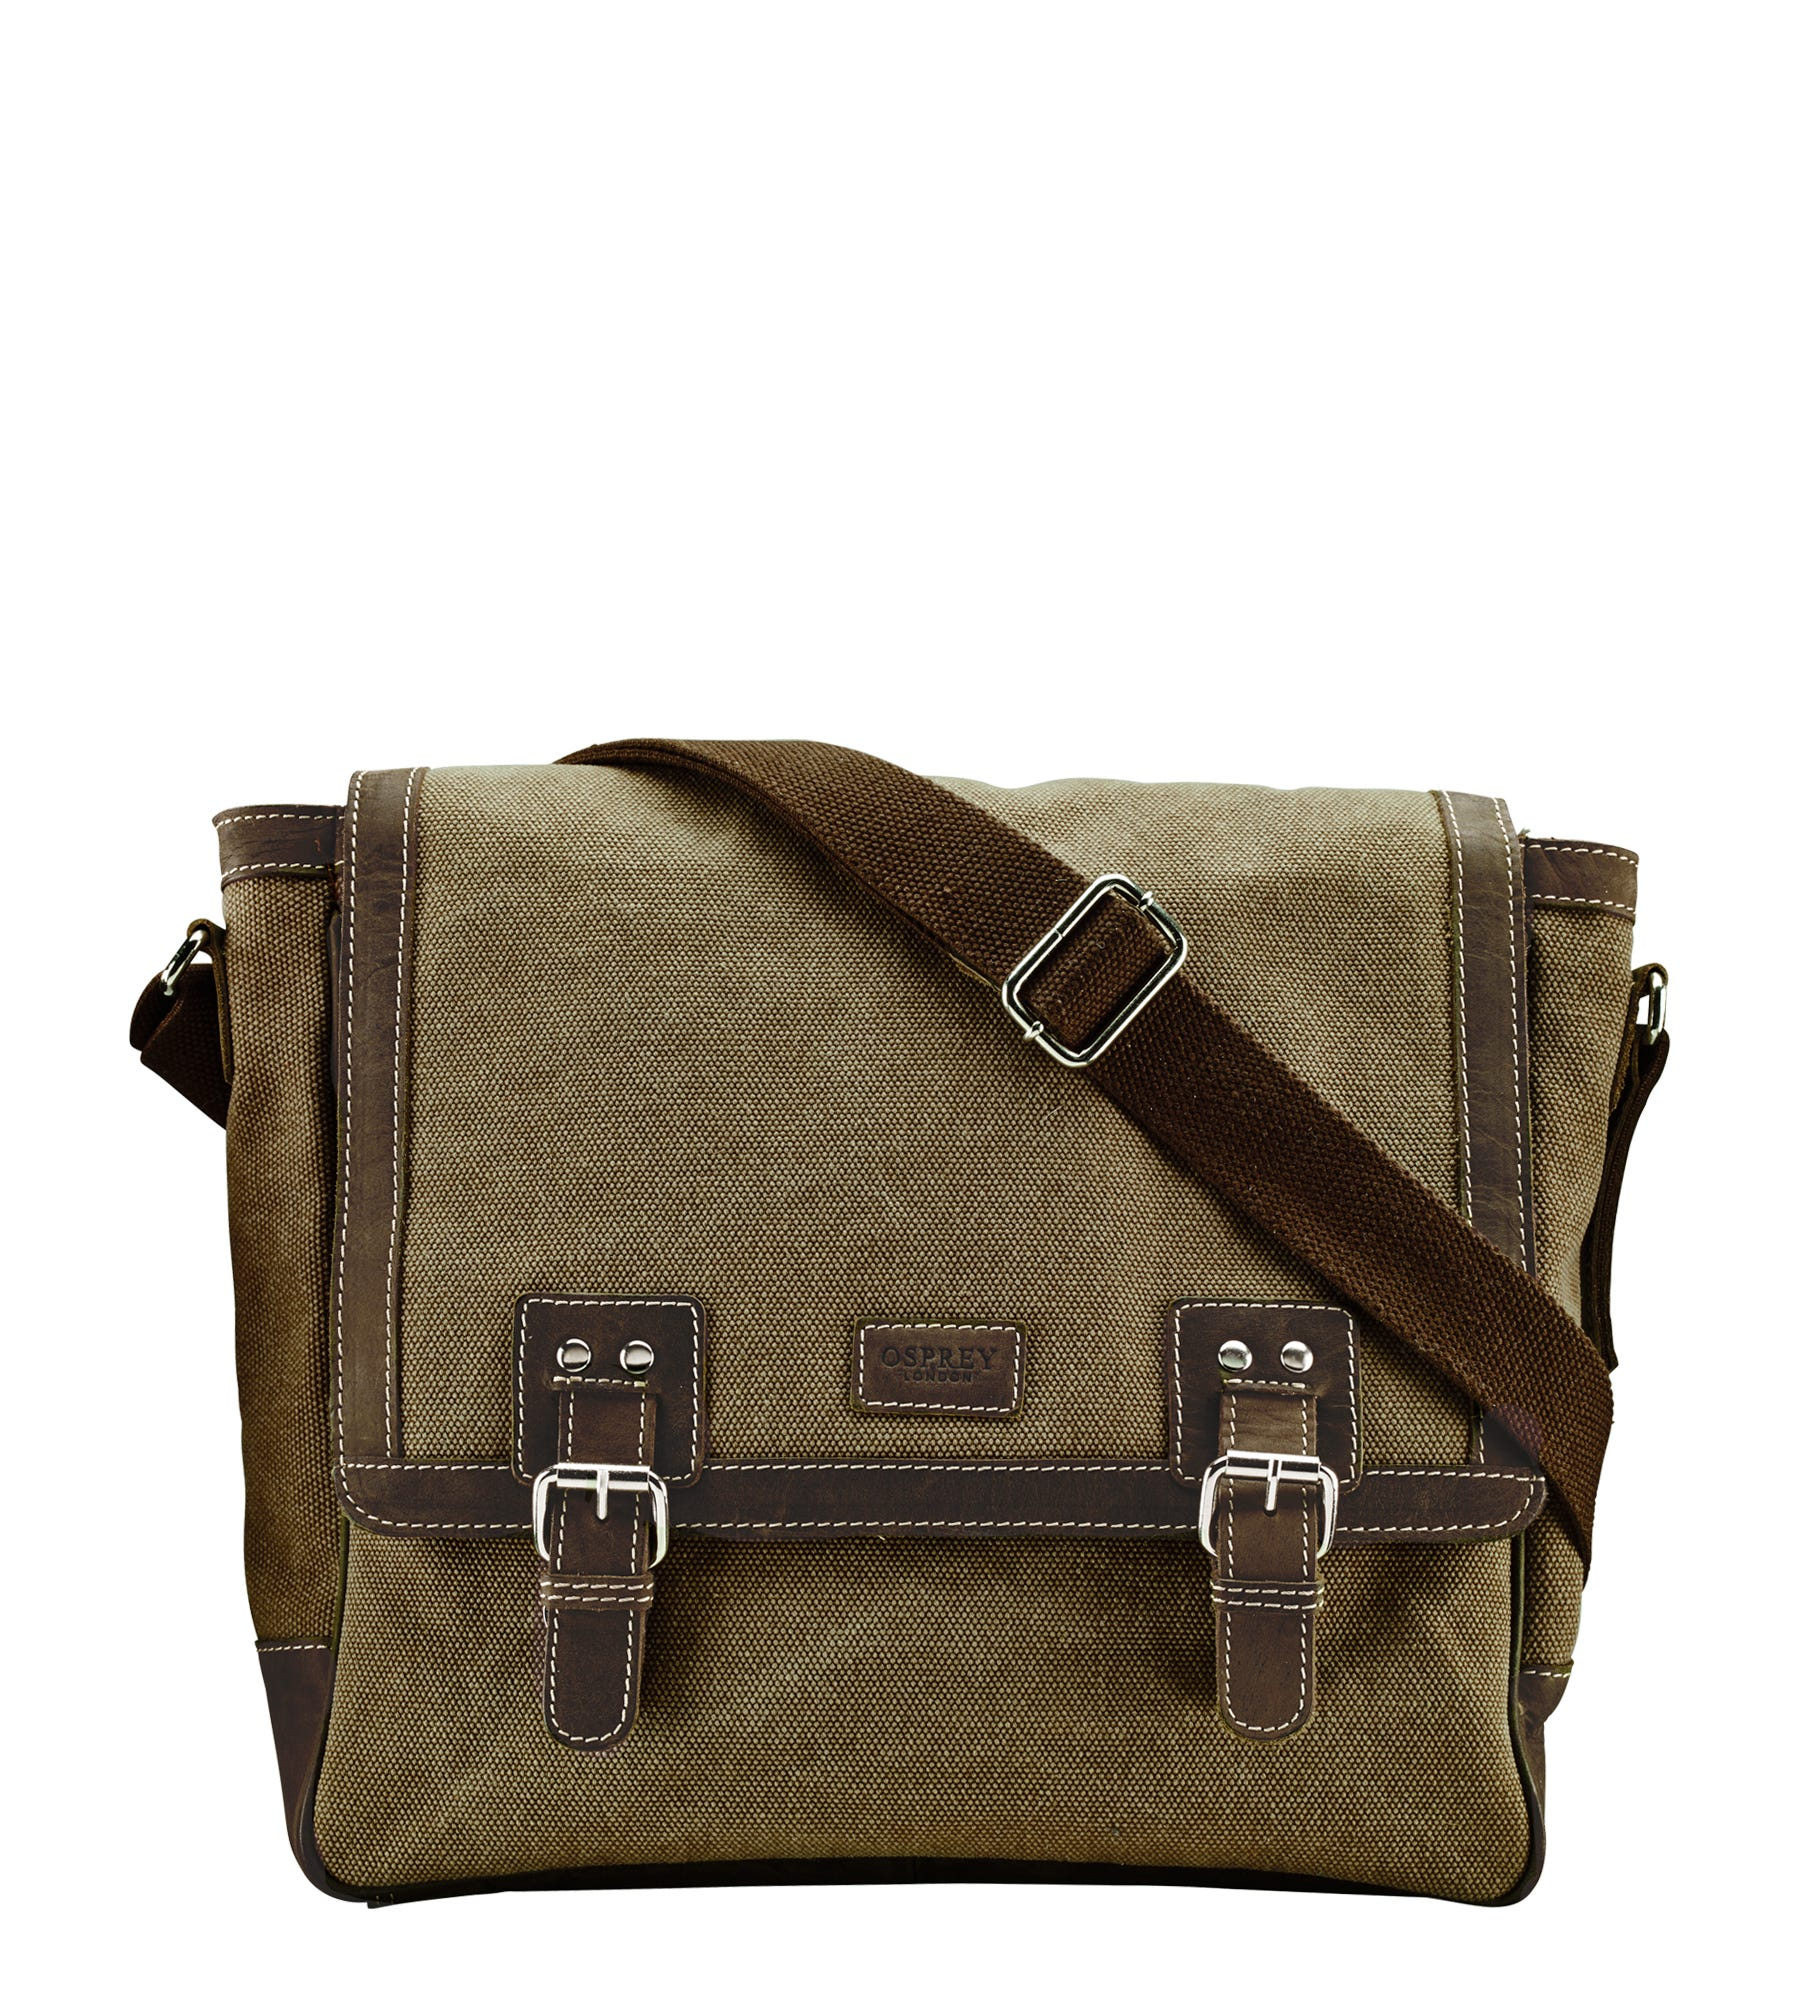 An image of The Hunter Canvas & Leather Satchel